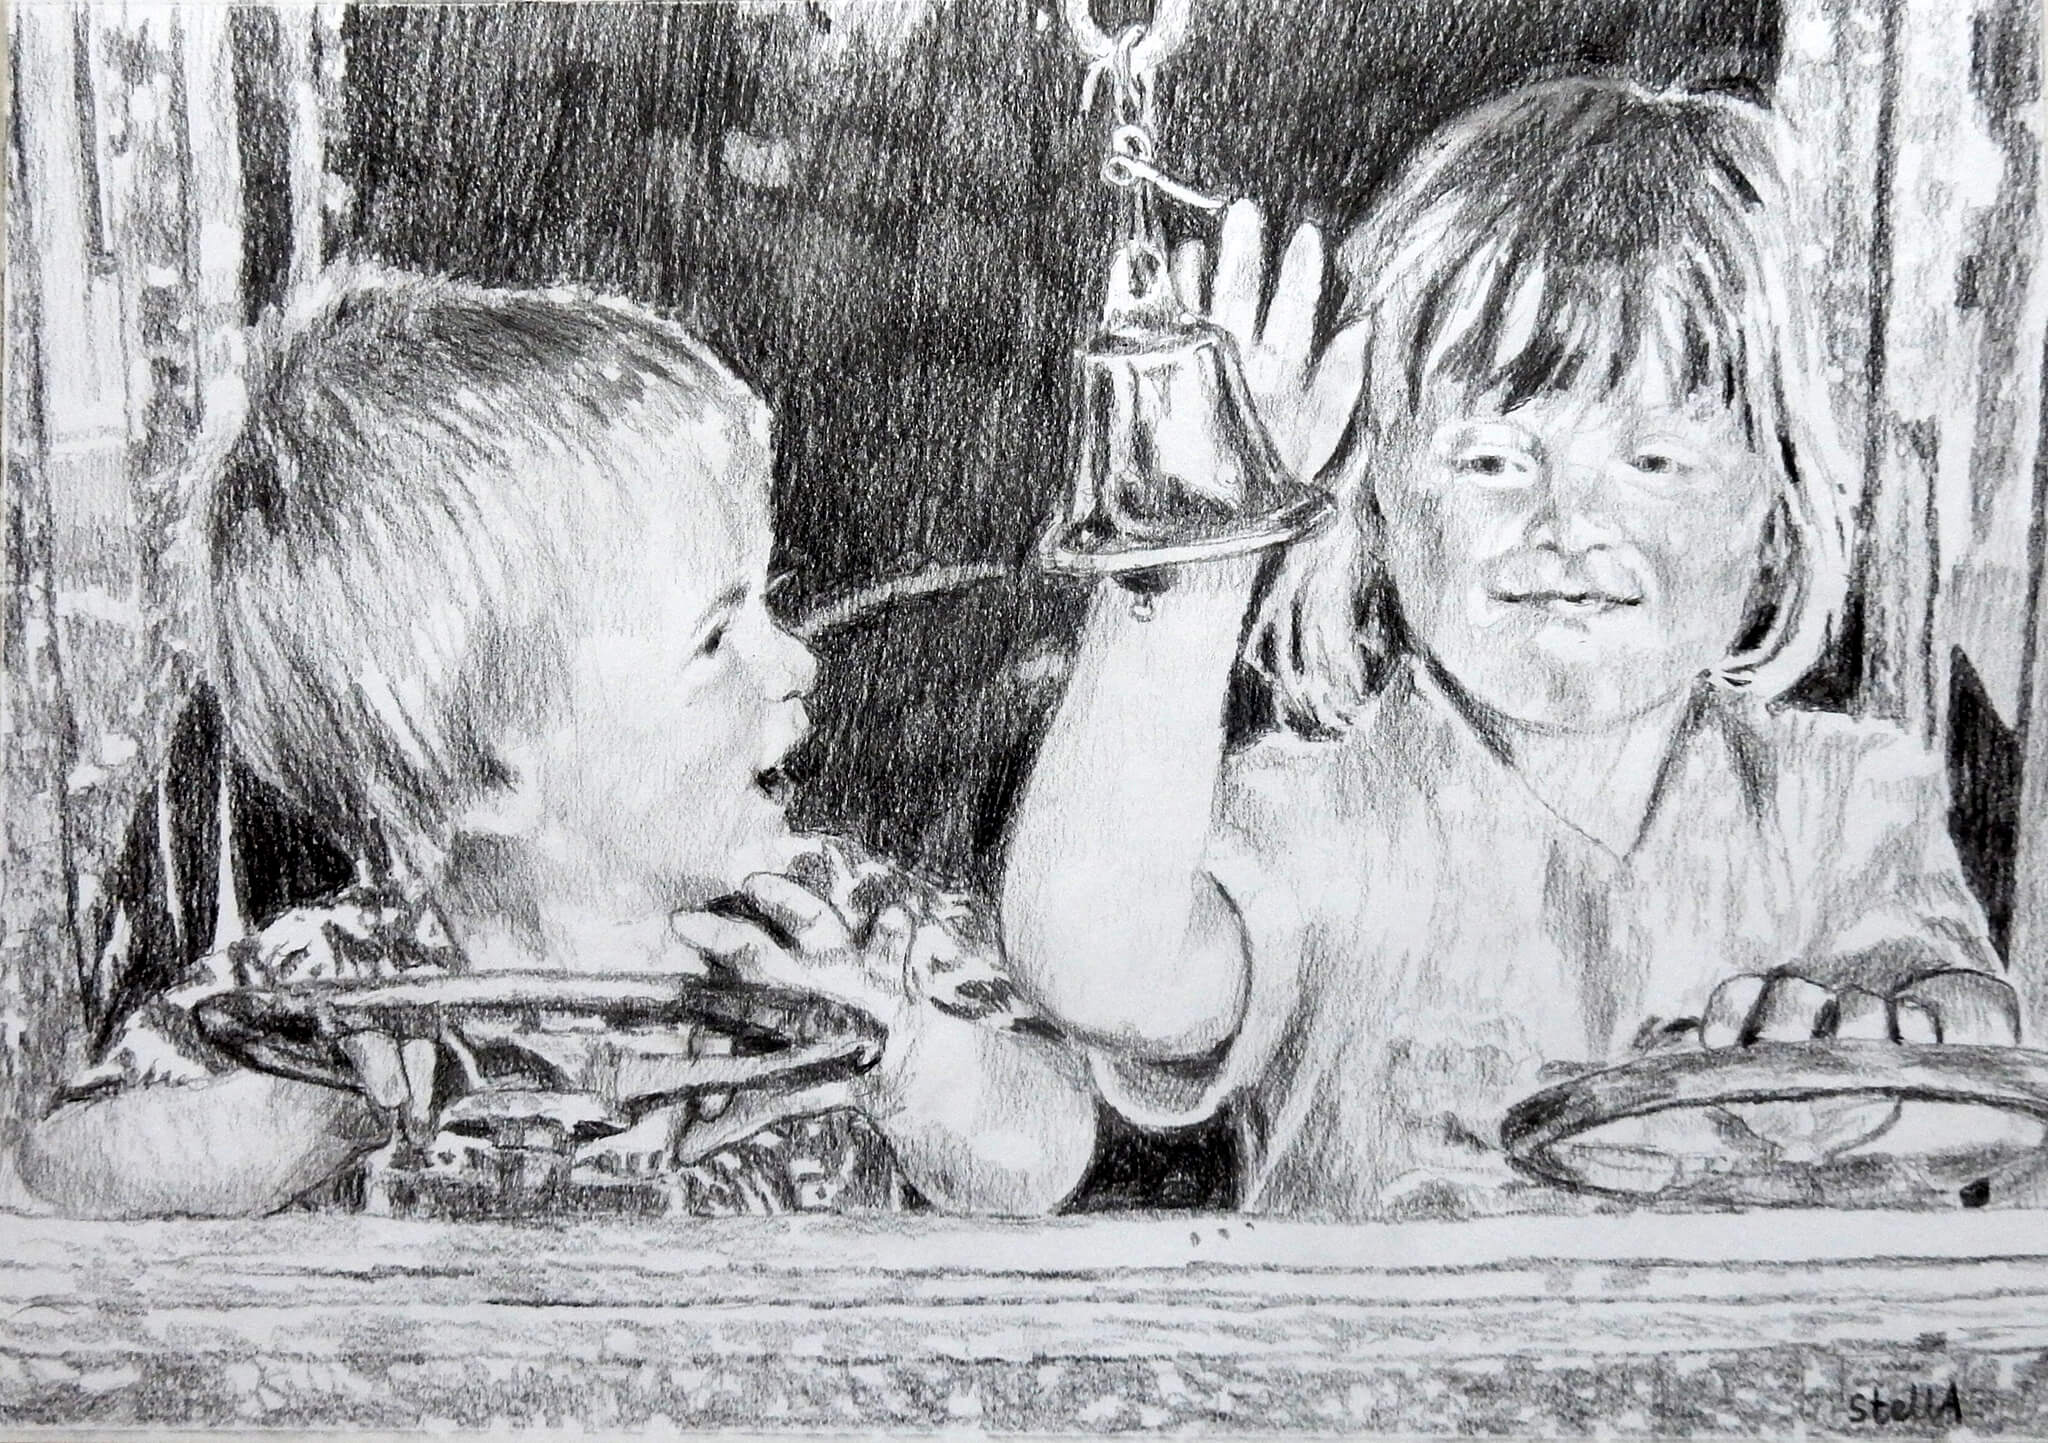 Tim Beeson and sister commissioned childhood drawing on paper from photo by Stella Tooth